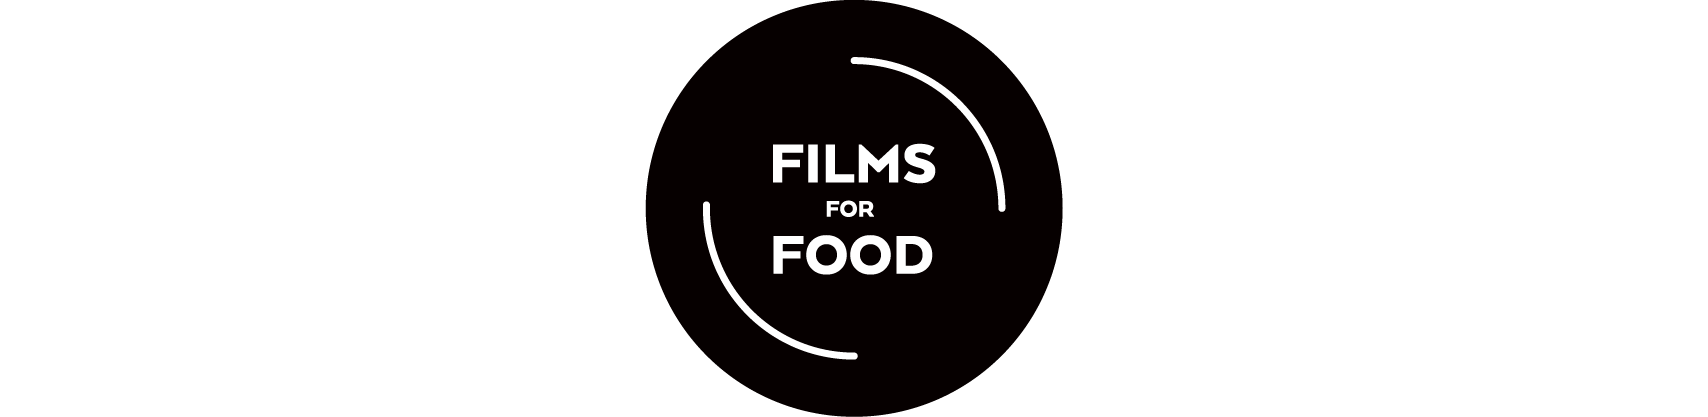 Films for Food